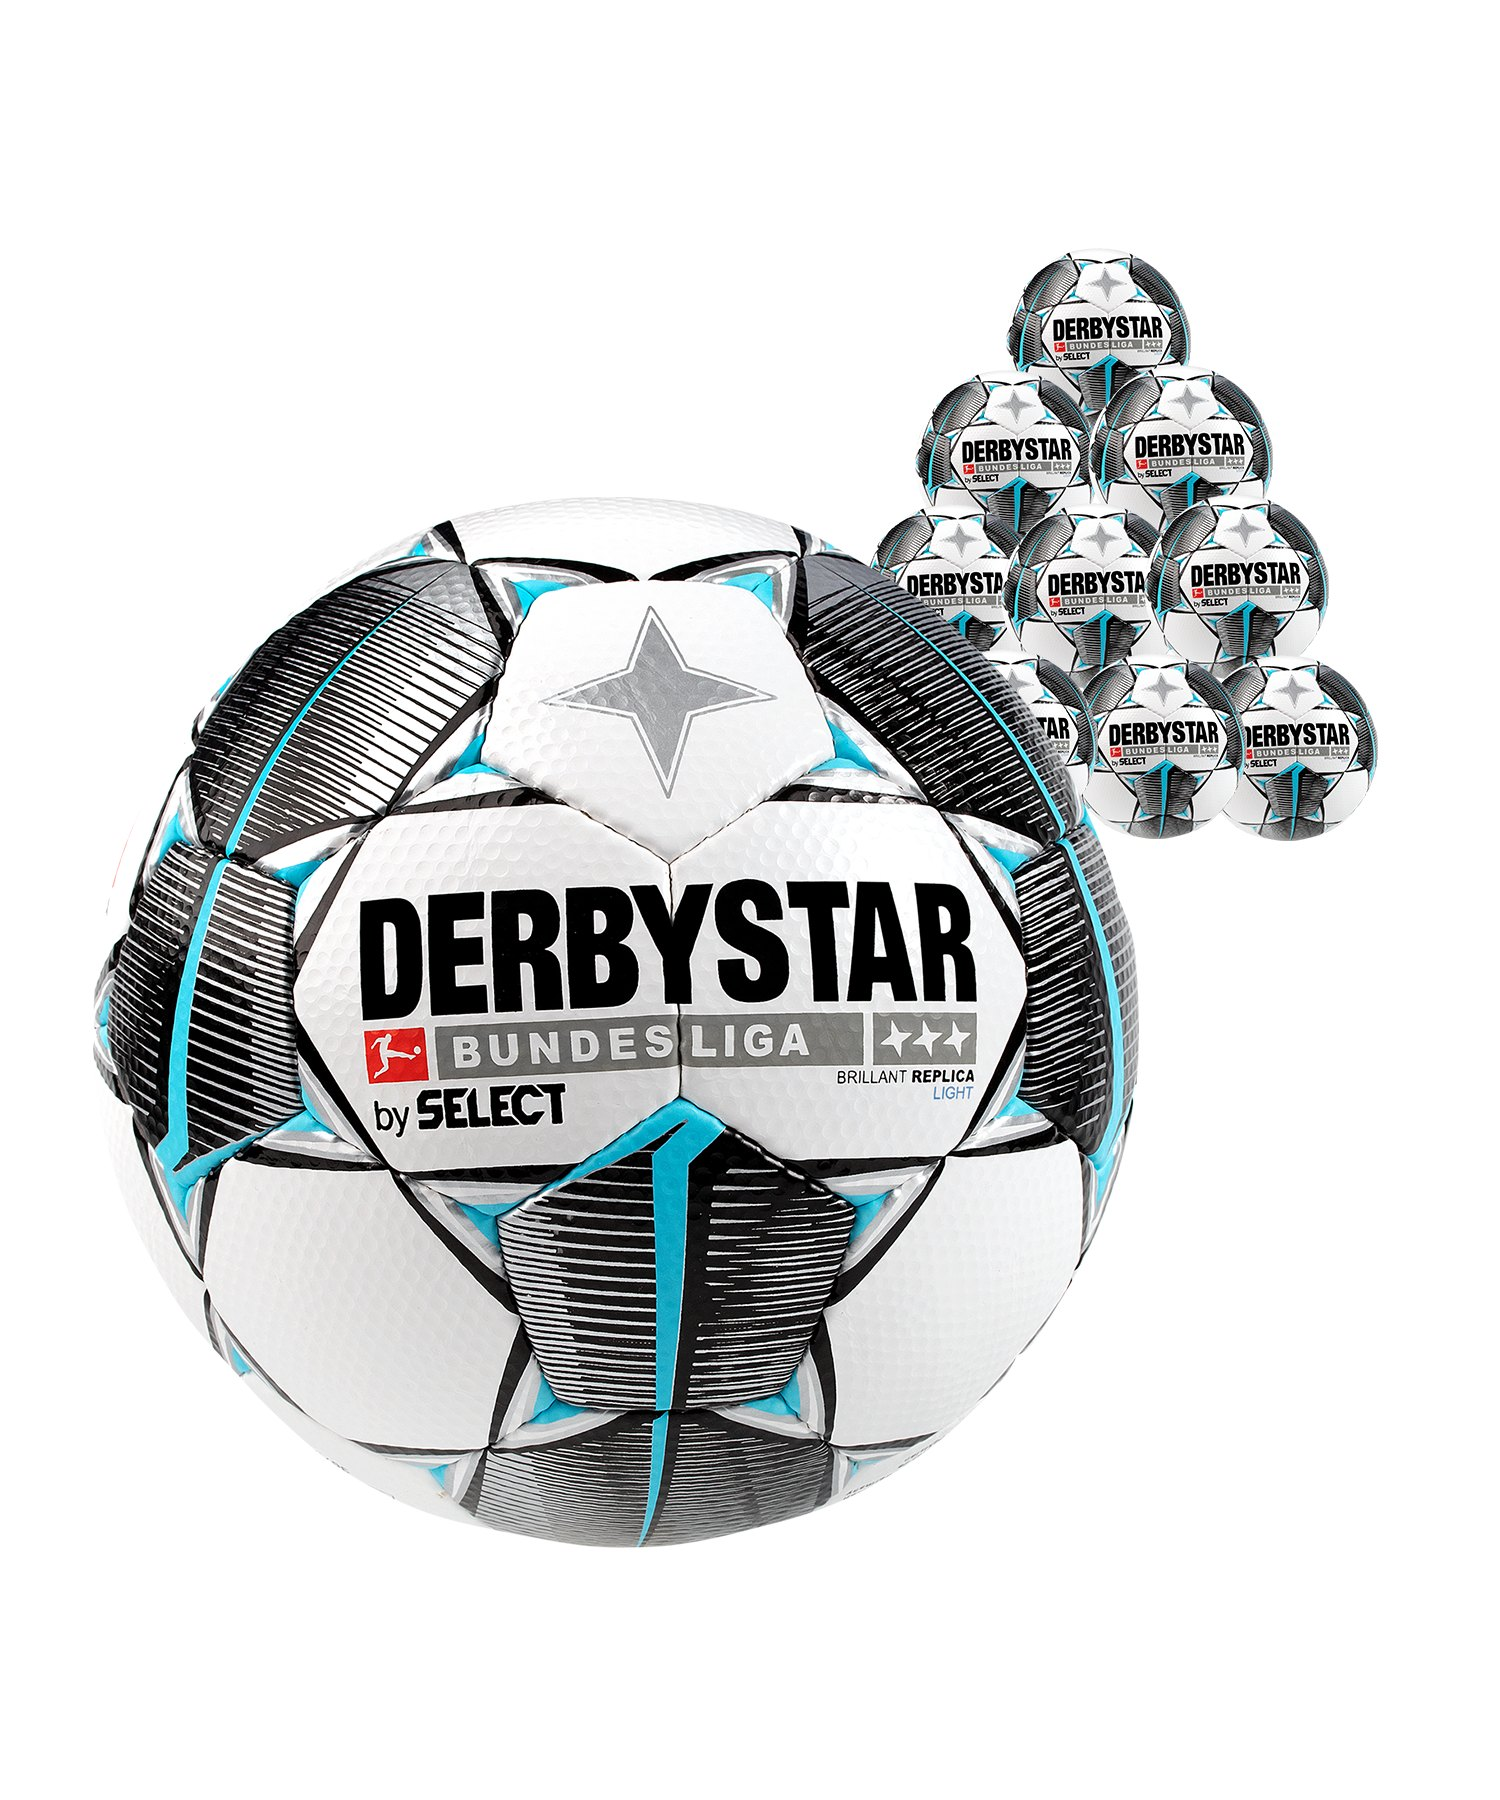 Derbystar Bundesliga Bril. Replica Light 20x Gr.5 Weiss F019 - weiss